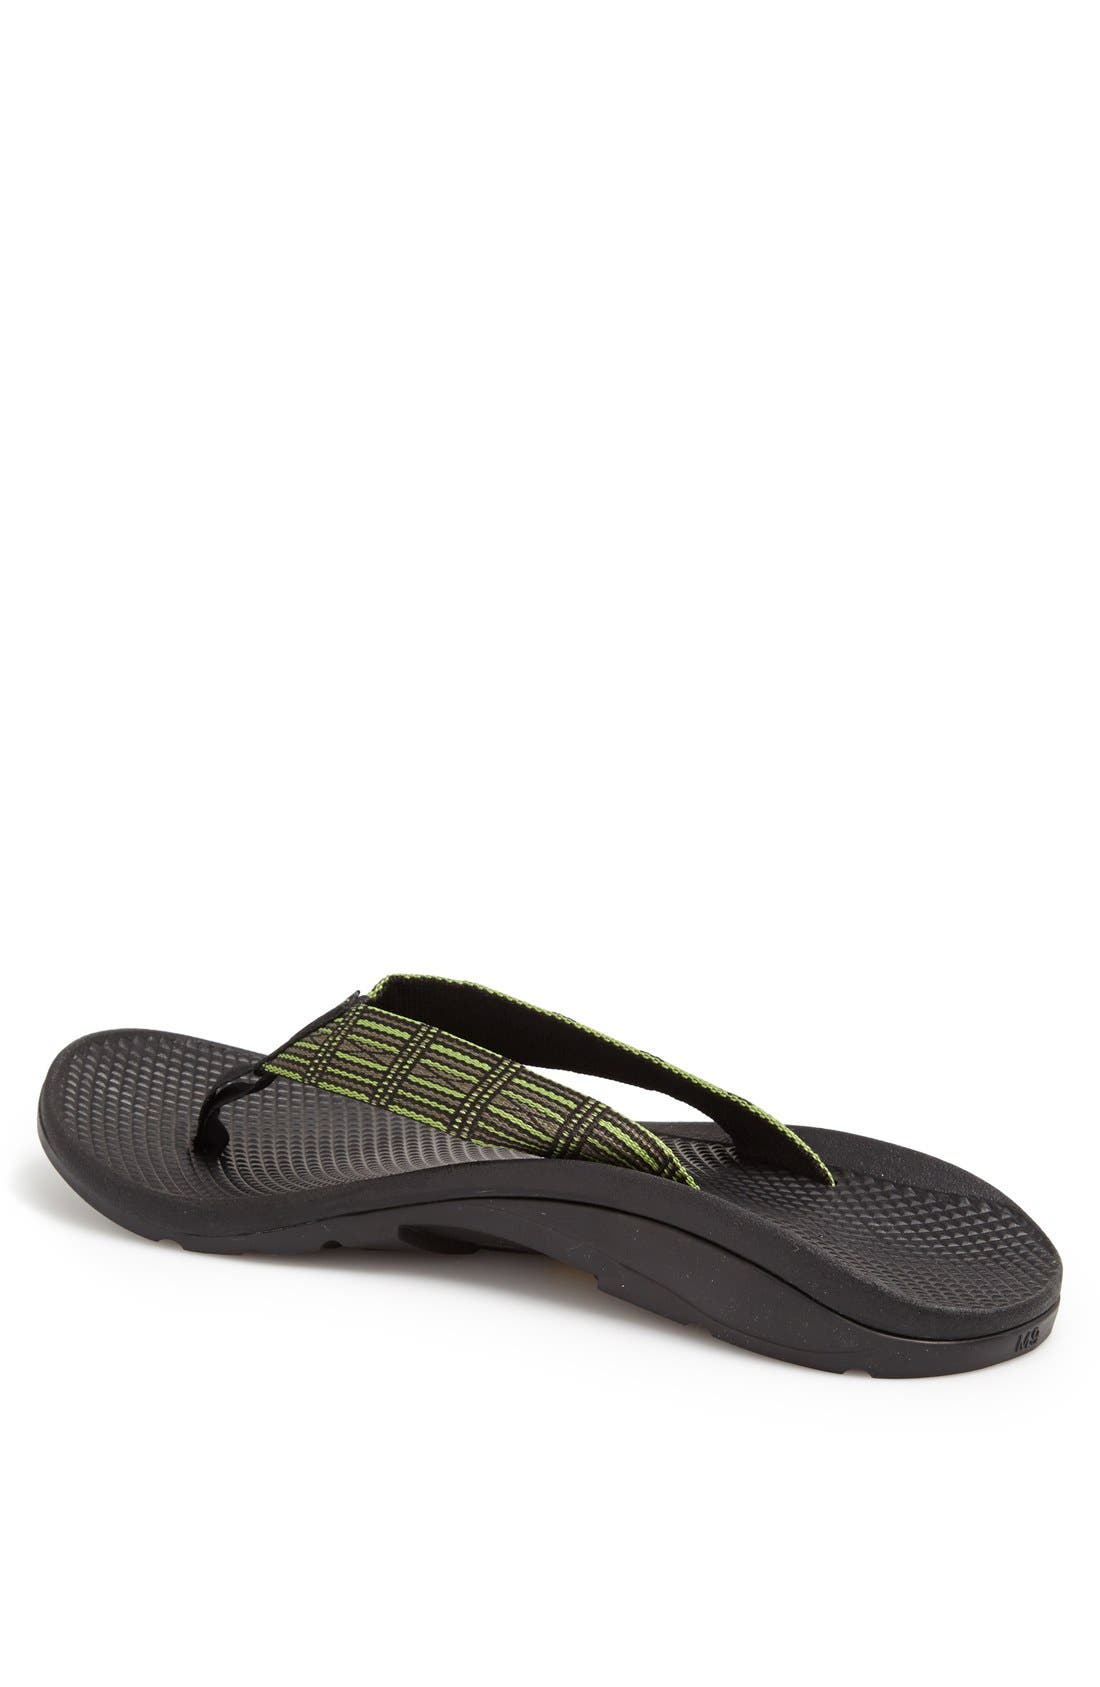 Alternate Image 2  - Chaco 'Flip Vibe' Flip Flop (Men)